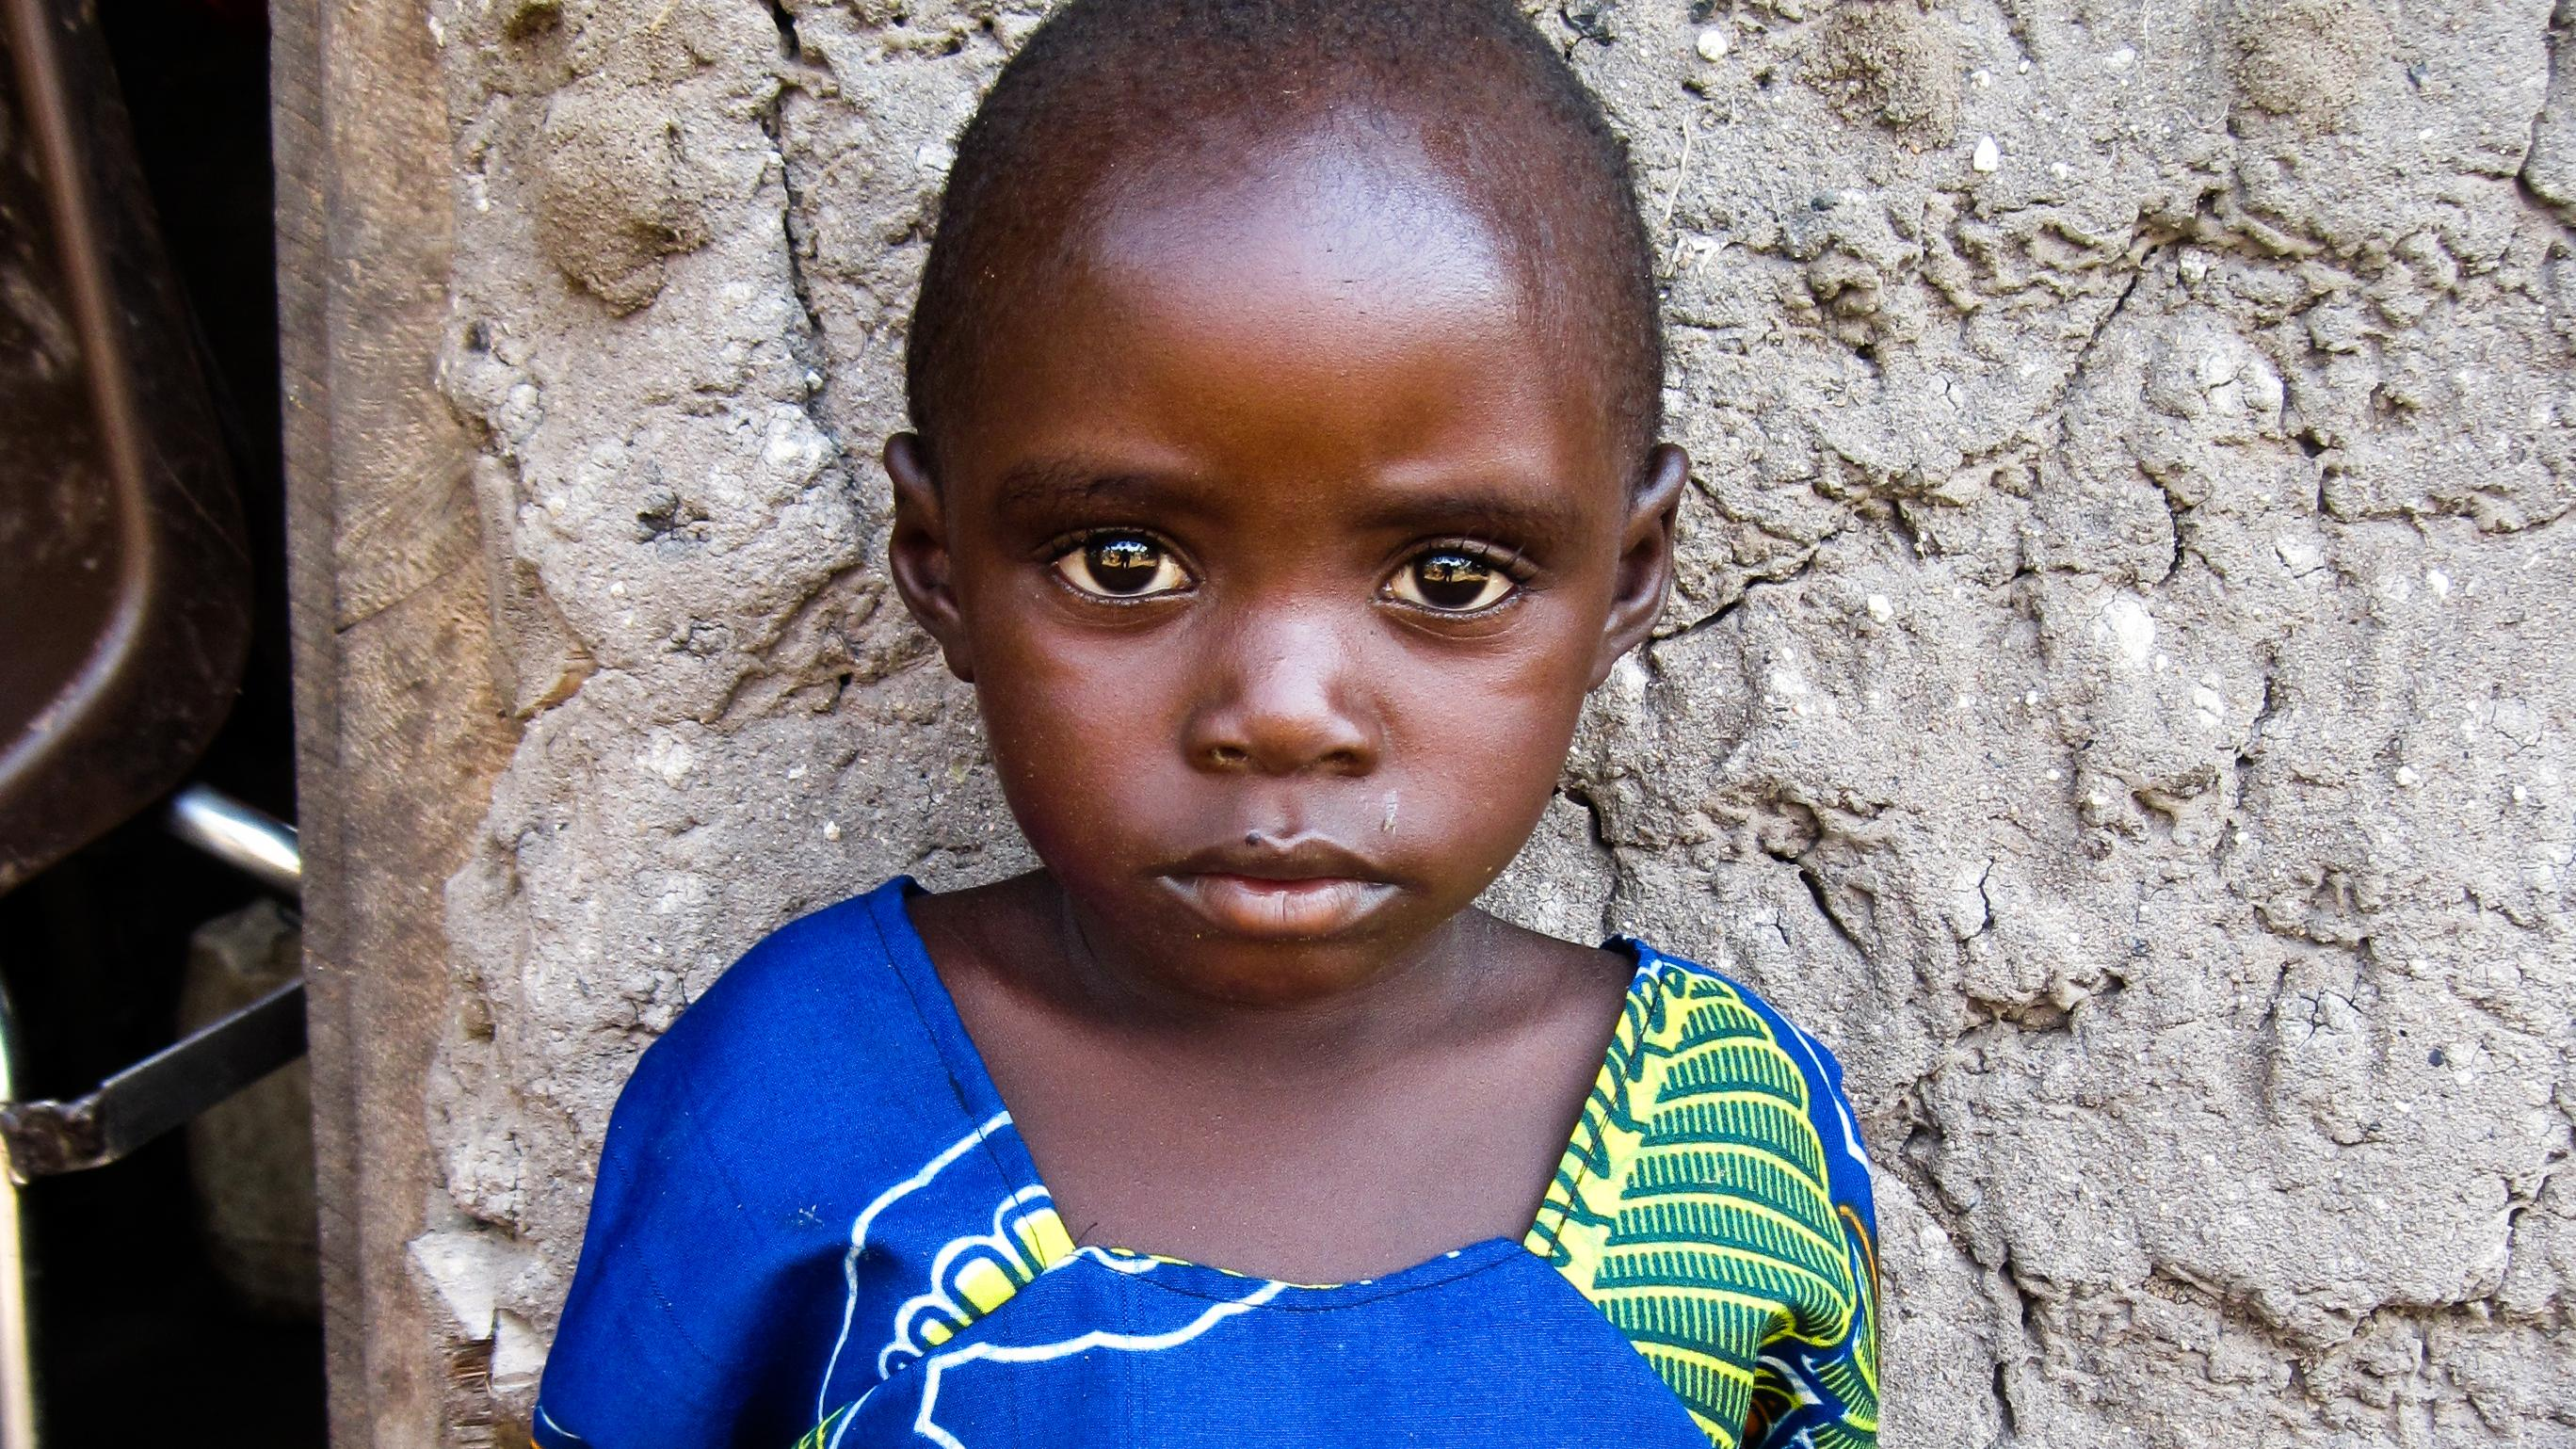 Pictures of poor children in south africa South Africa - Wikipedia